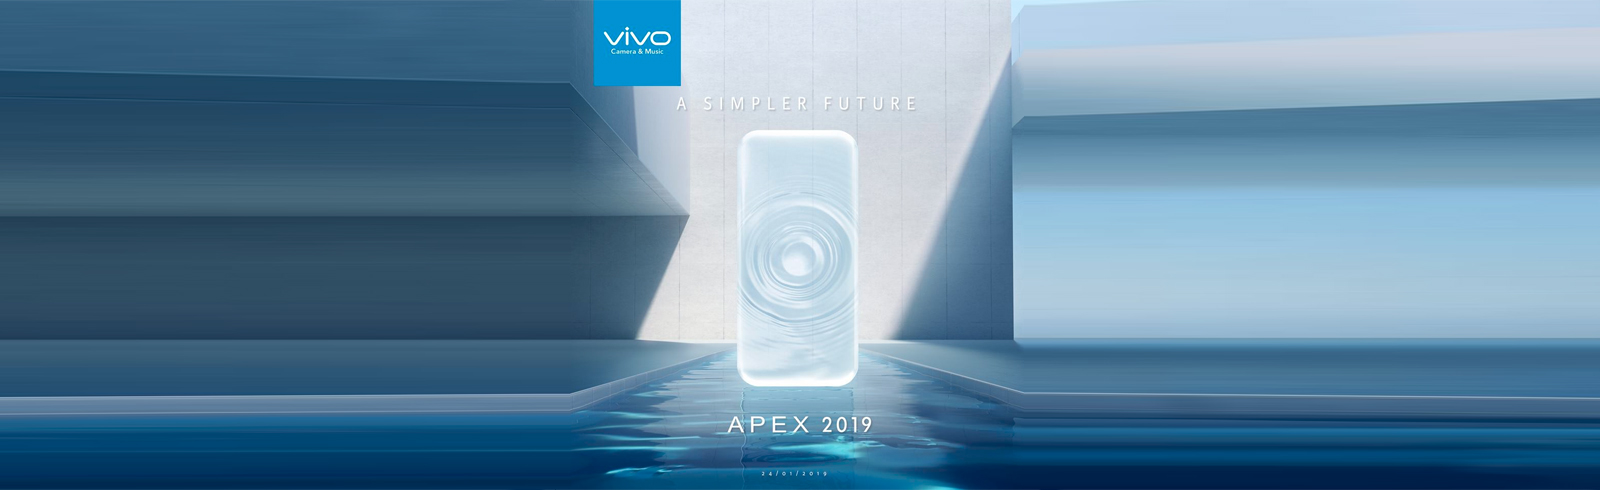 Vivo confirms it will unveil the Apex 2019 on January 24